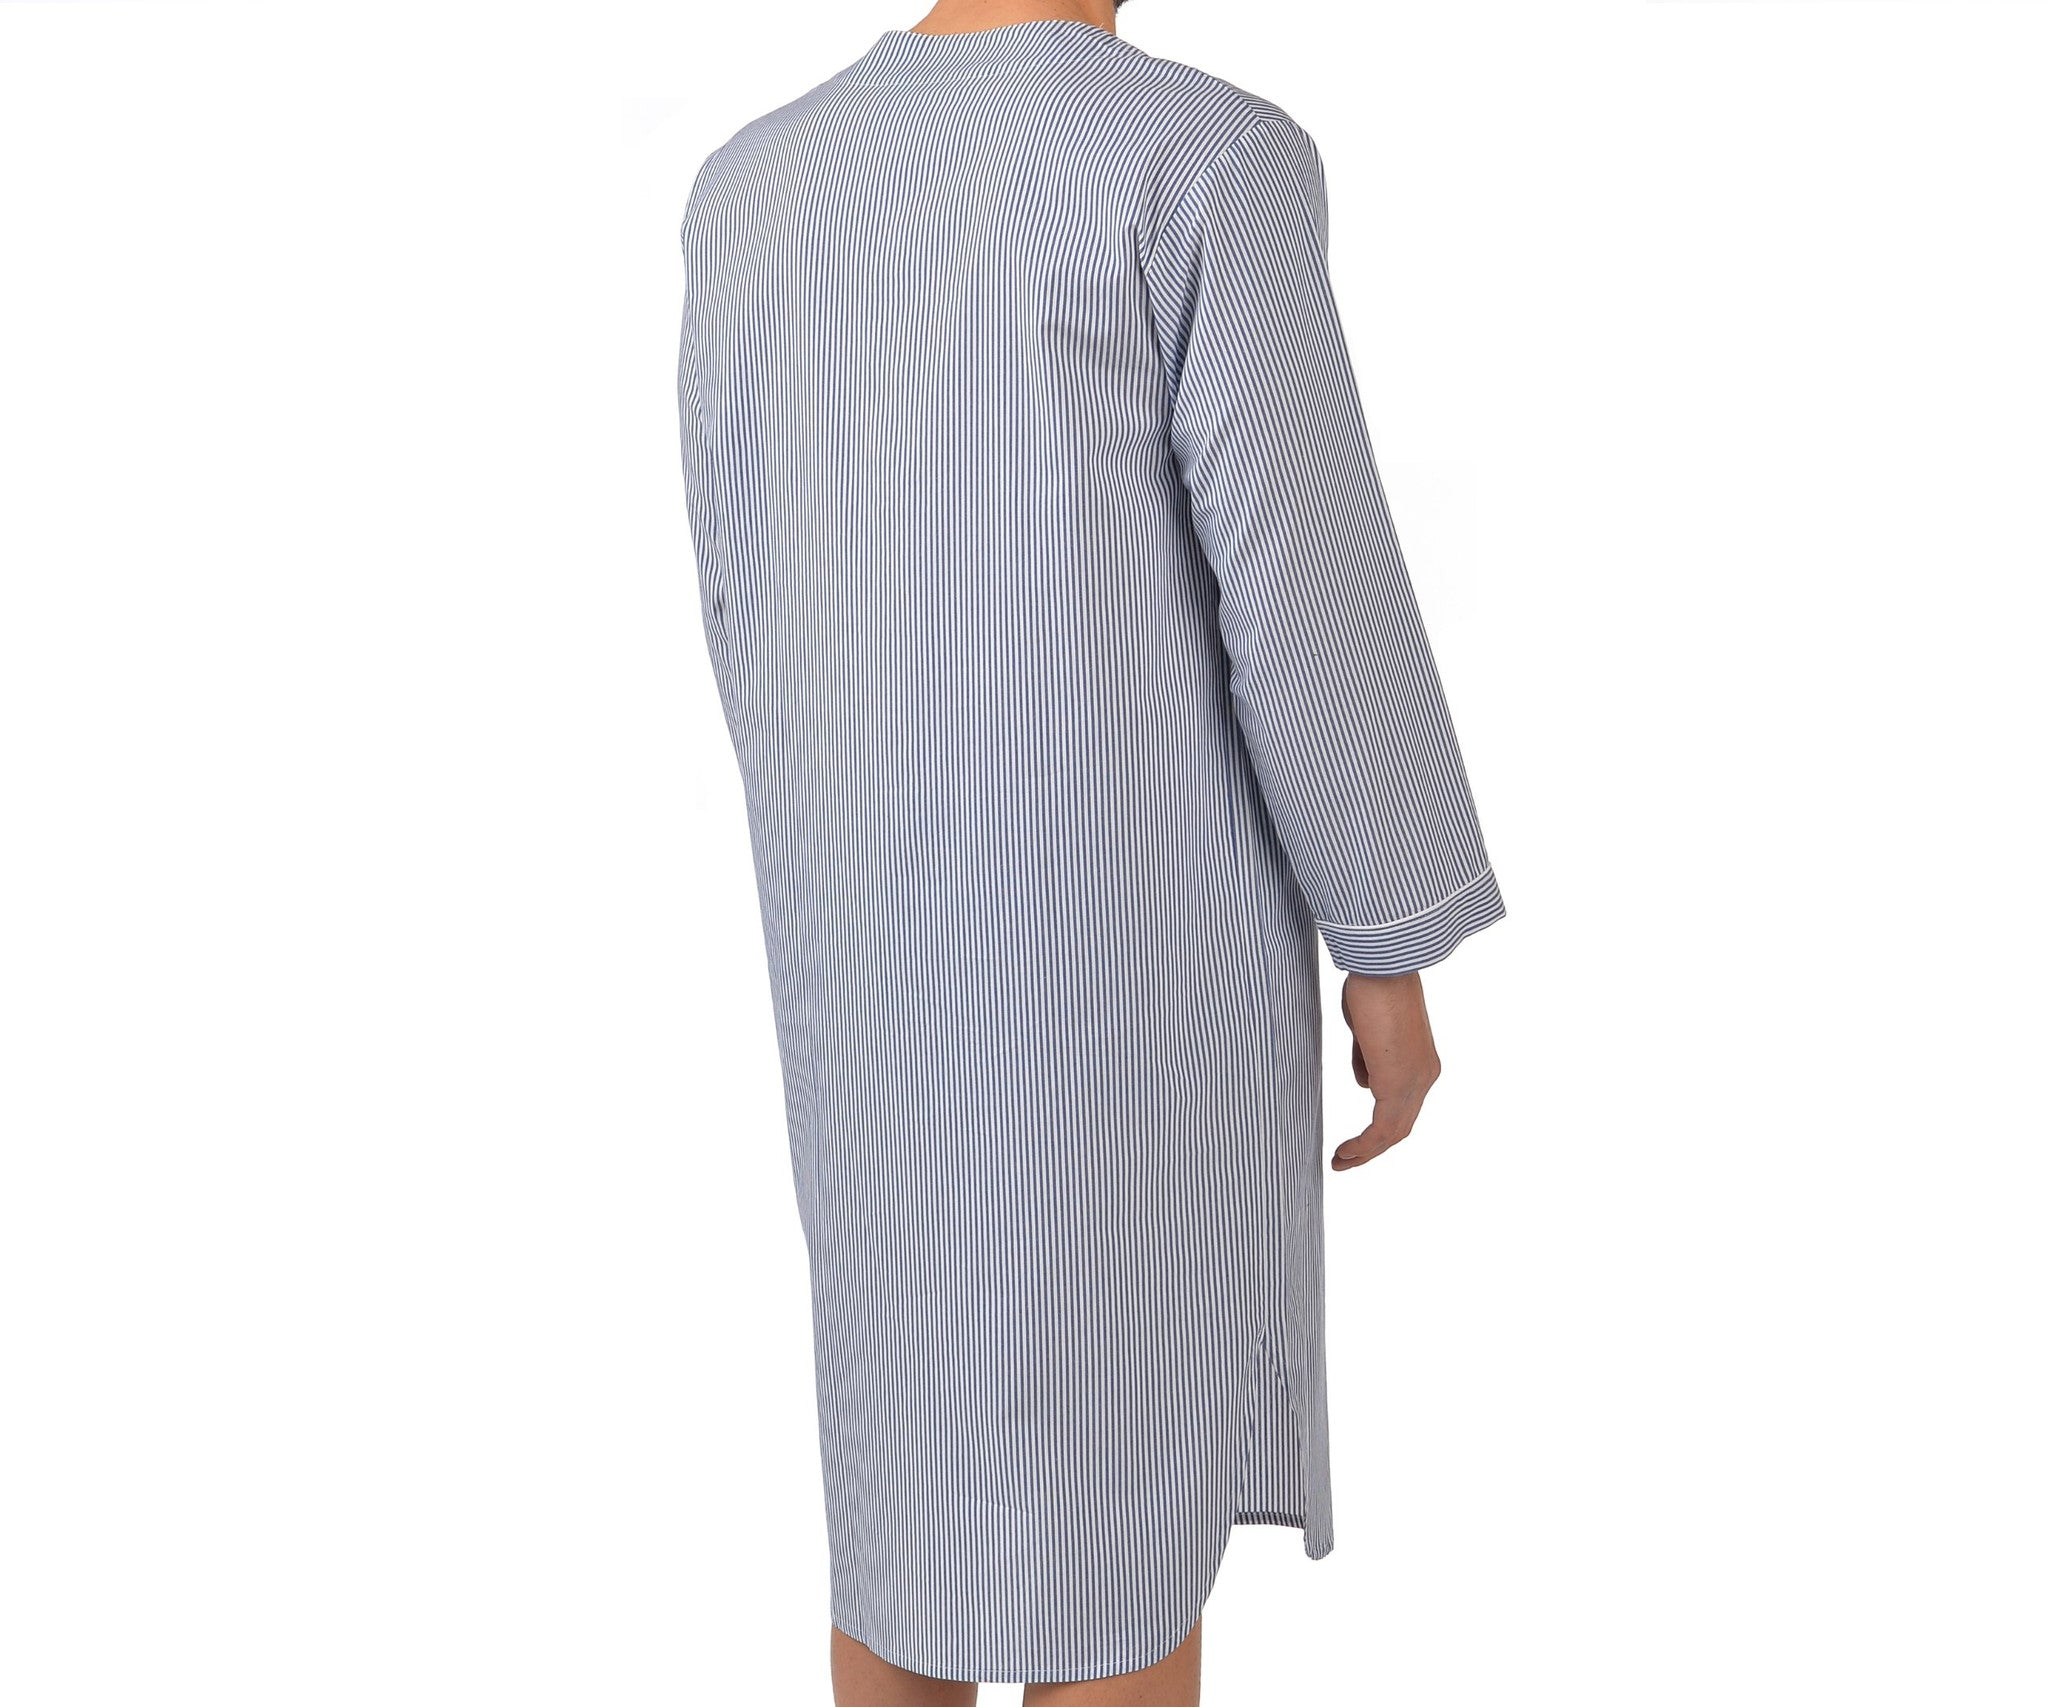 Cotton Nightshirt In Navy Stripe